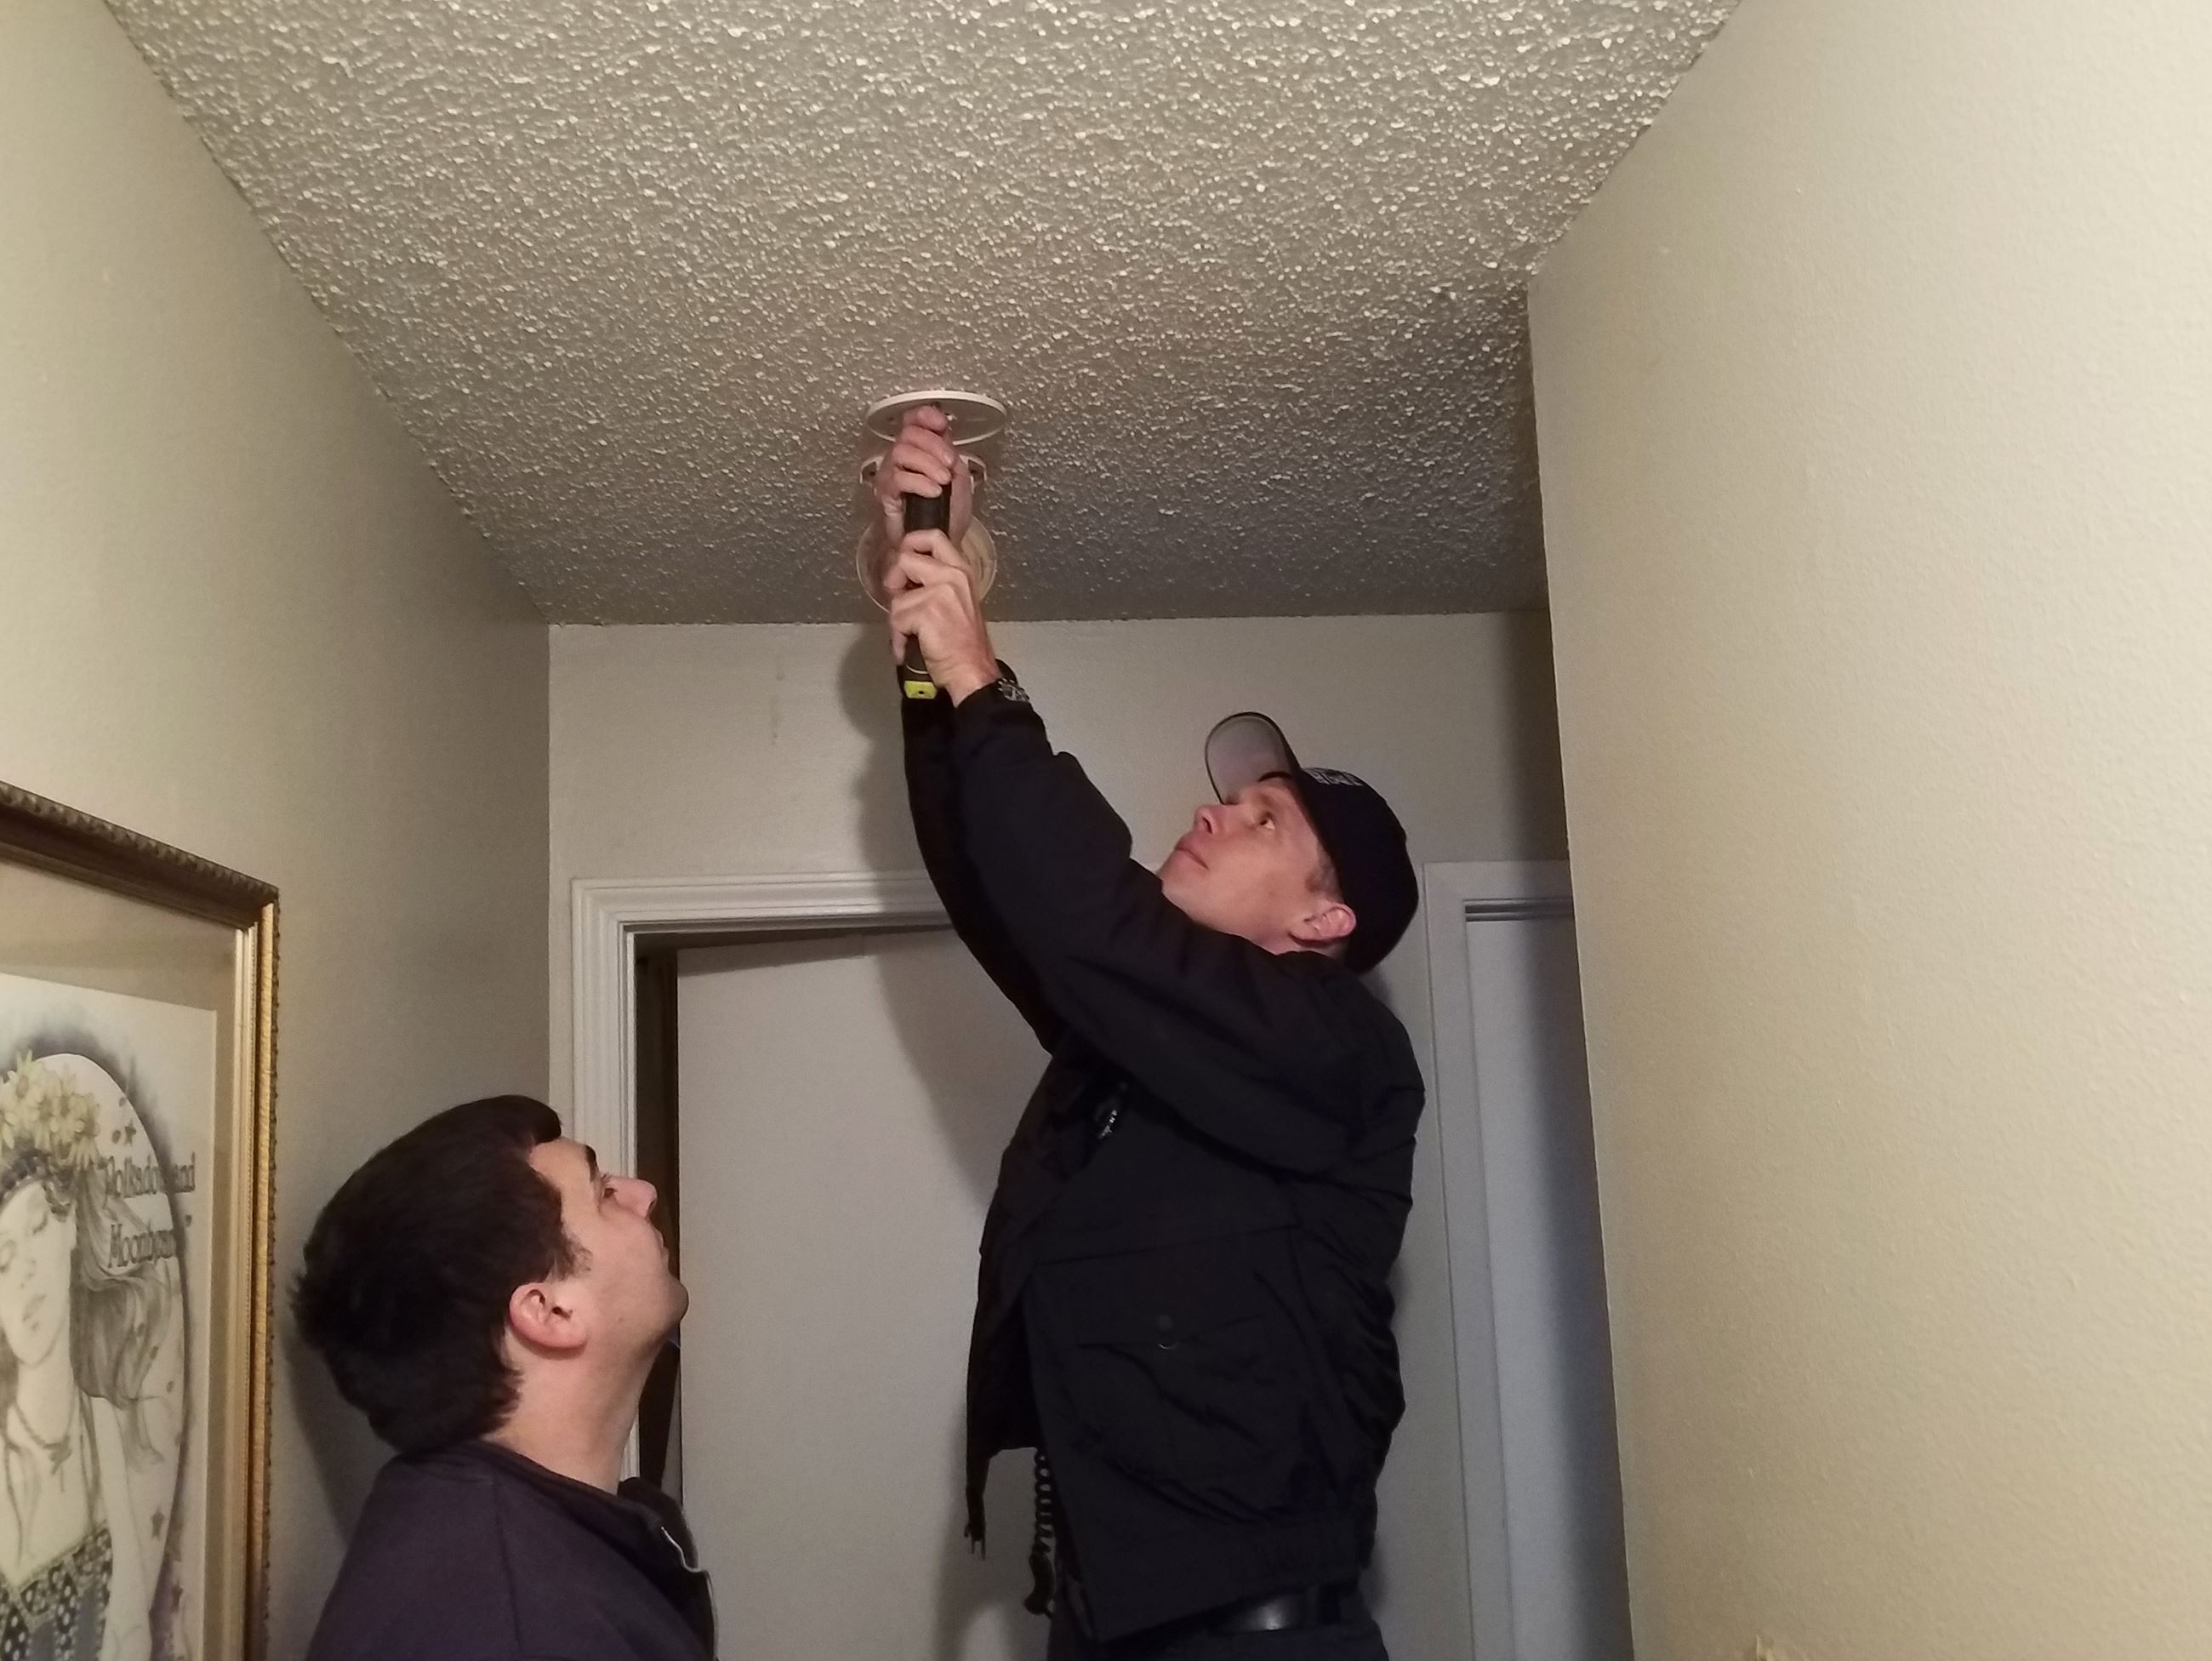 Two firefighters install a smoke alarm in a home